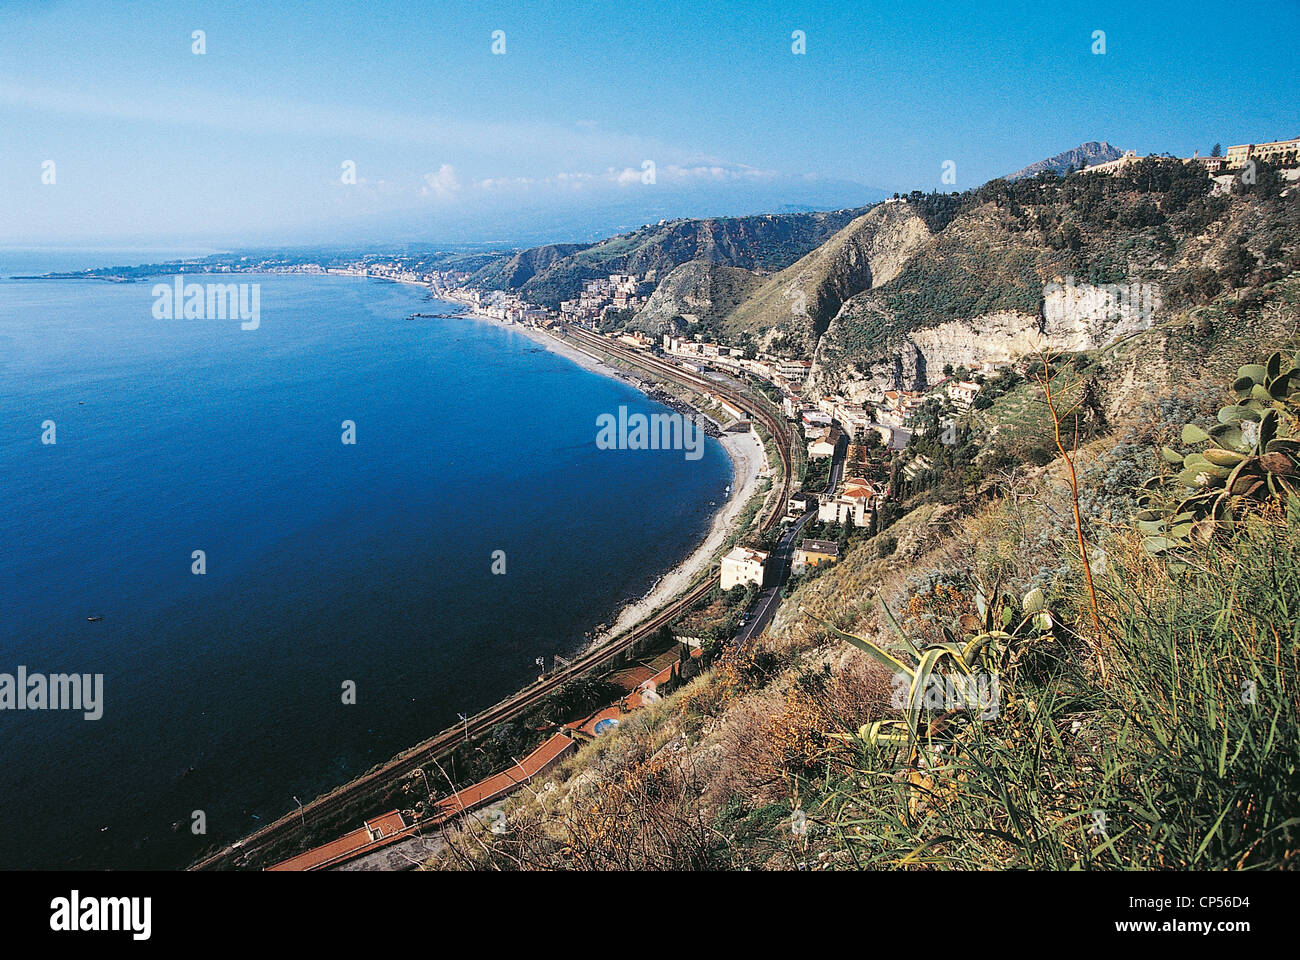 Sicilia giardini naxos stock photo: 48058000 alamy